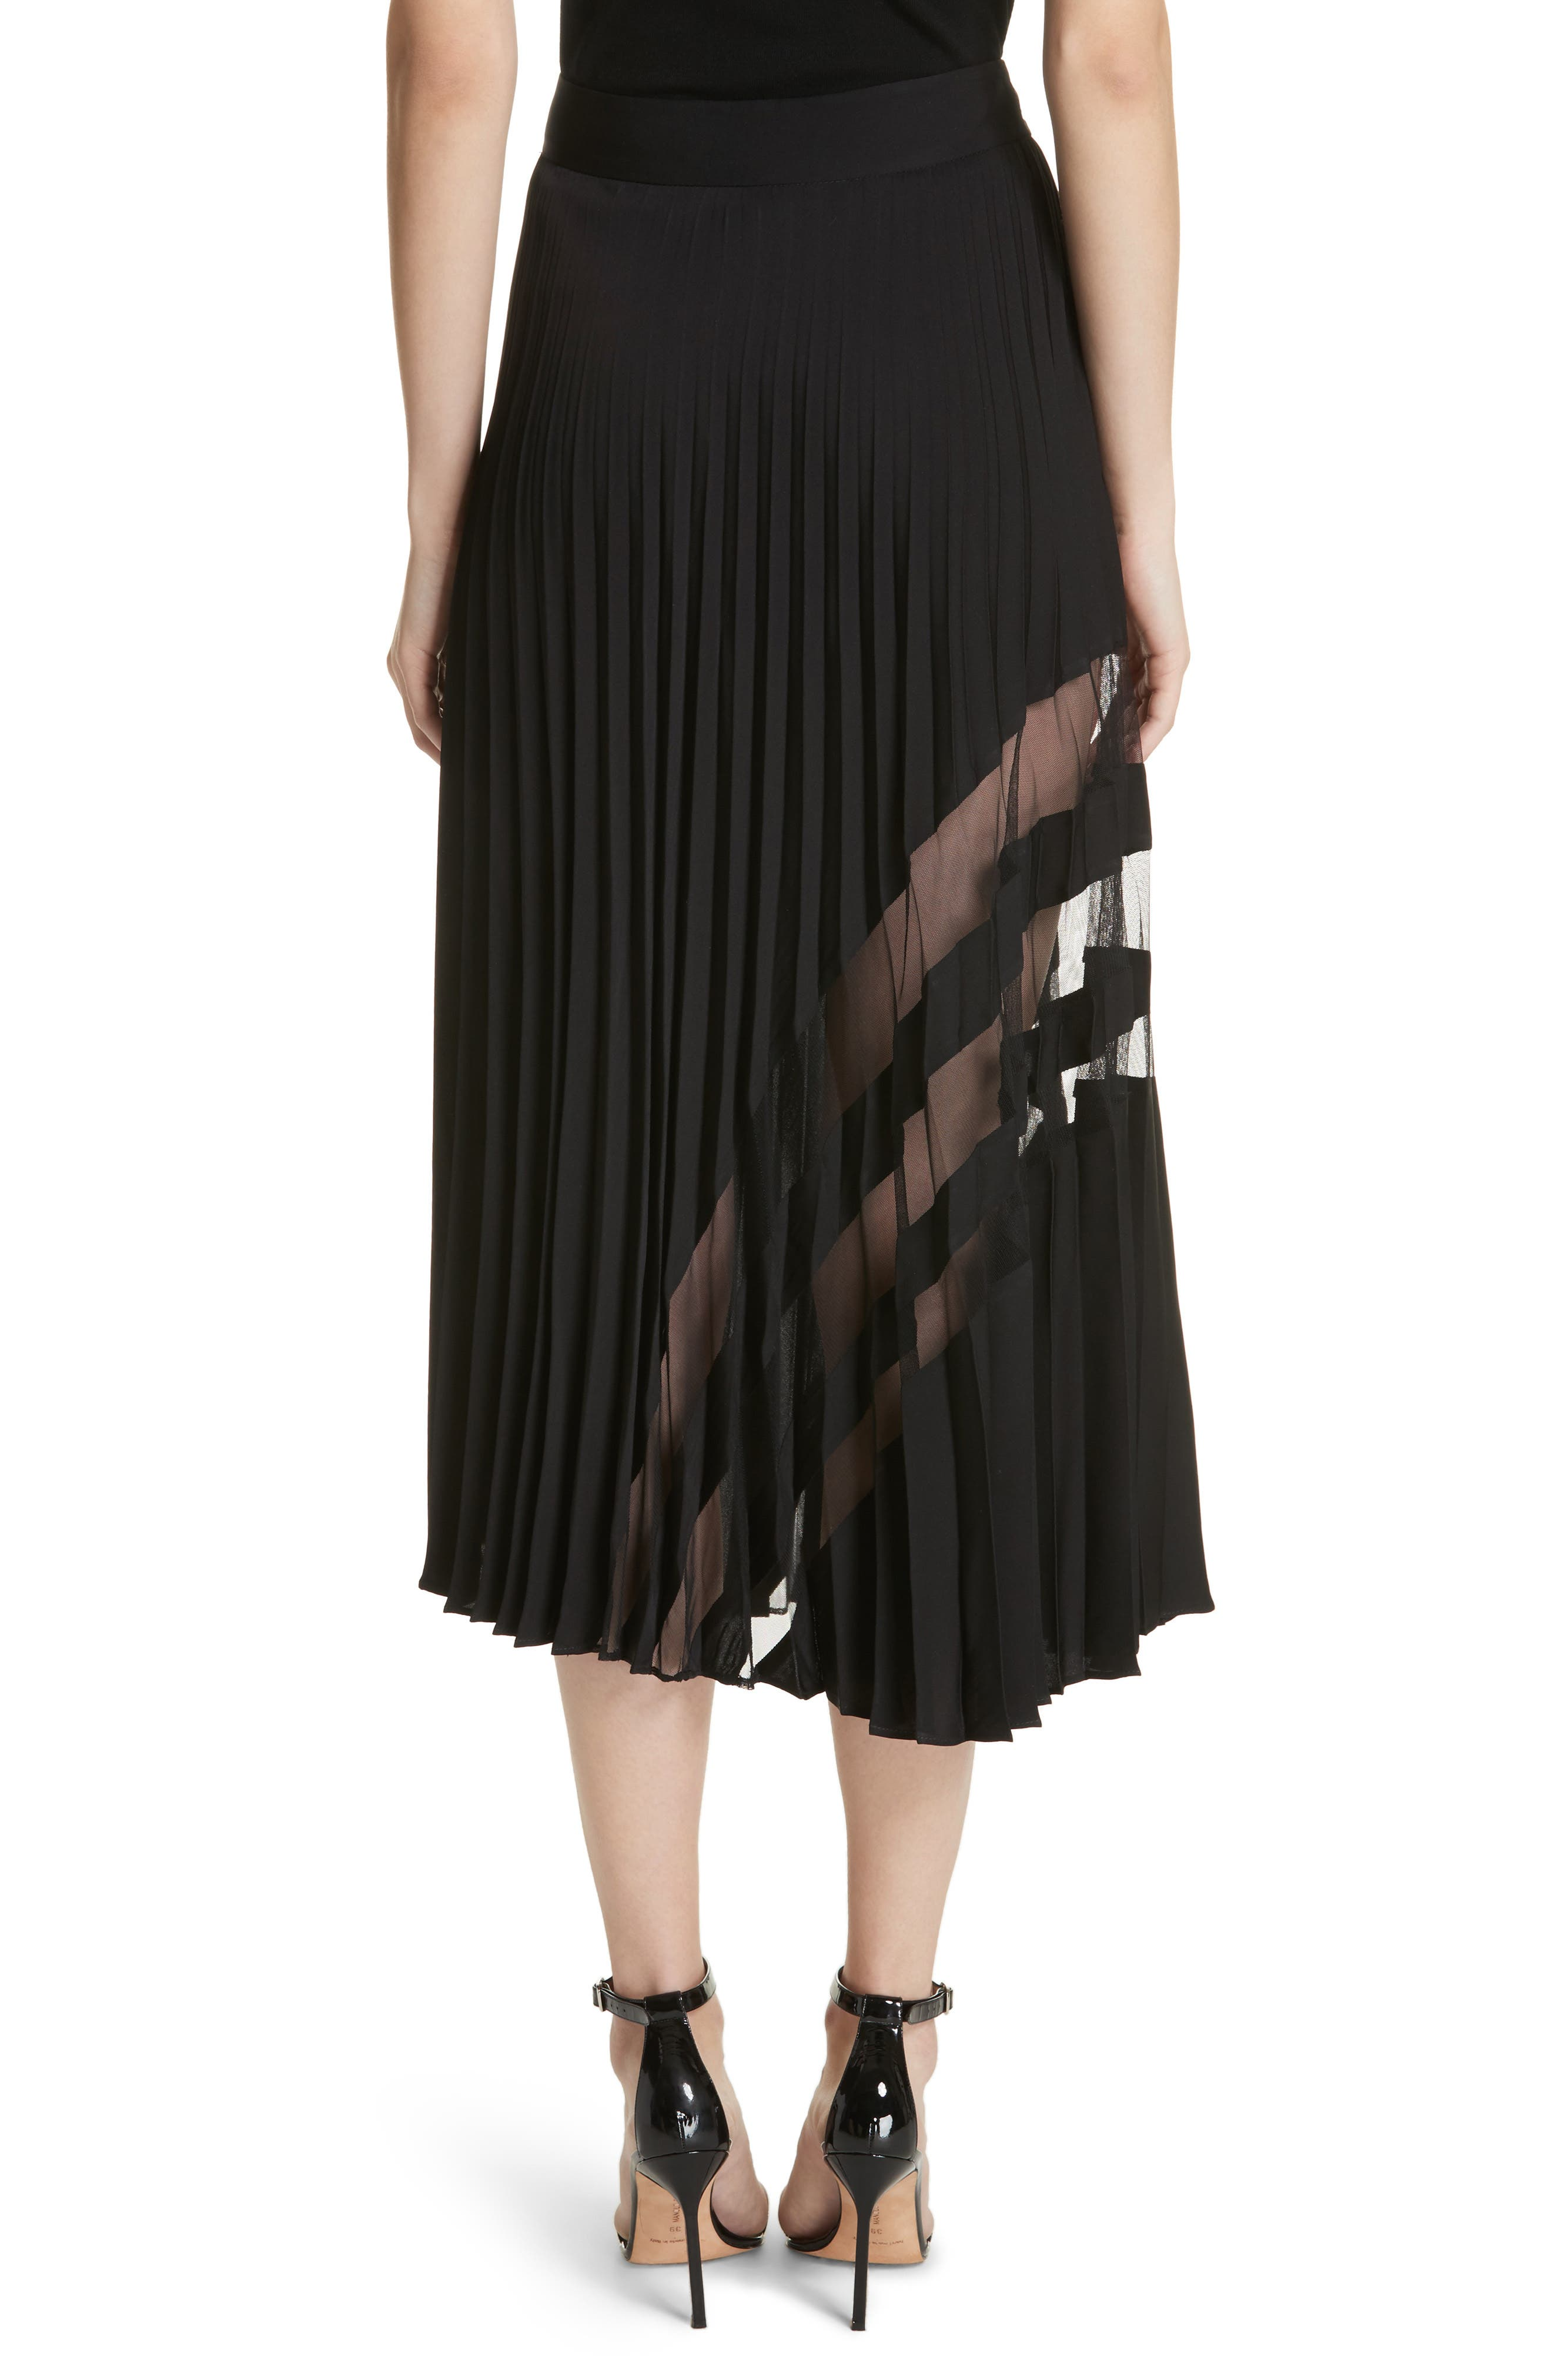 MILLY, Pleated Maxi Skirt, Alternate thumbnail 2, color, 007